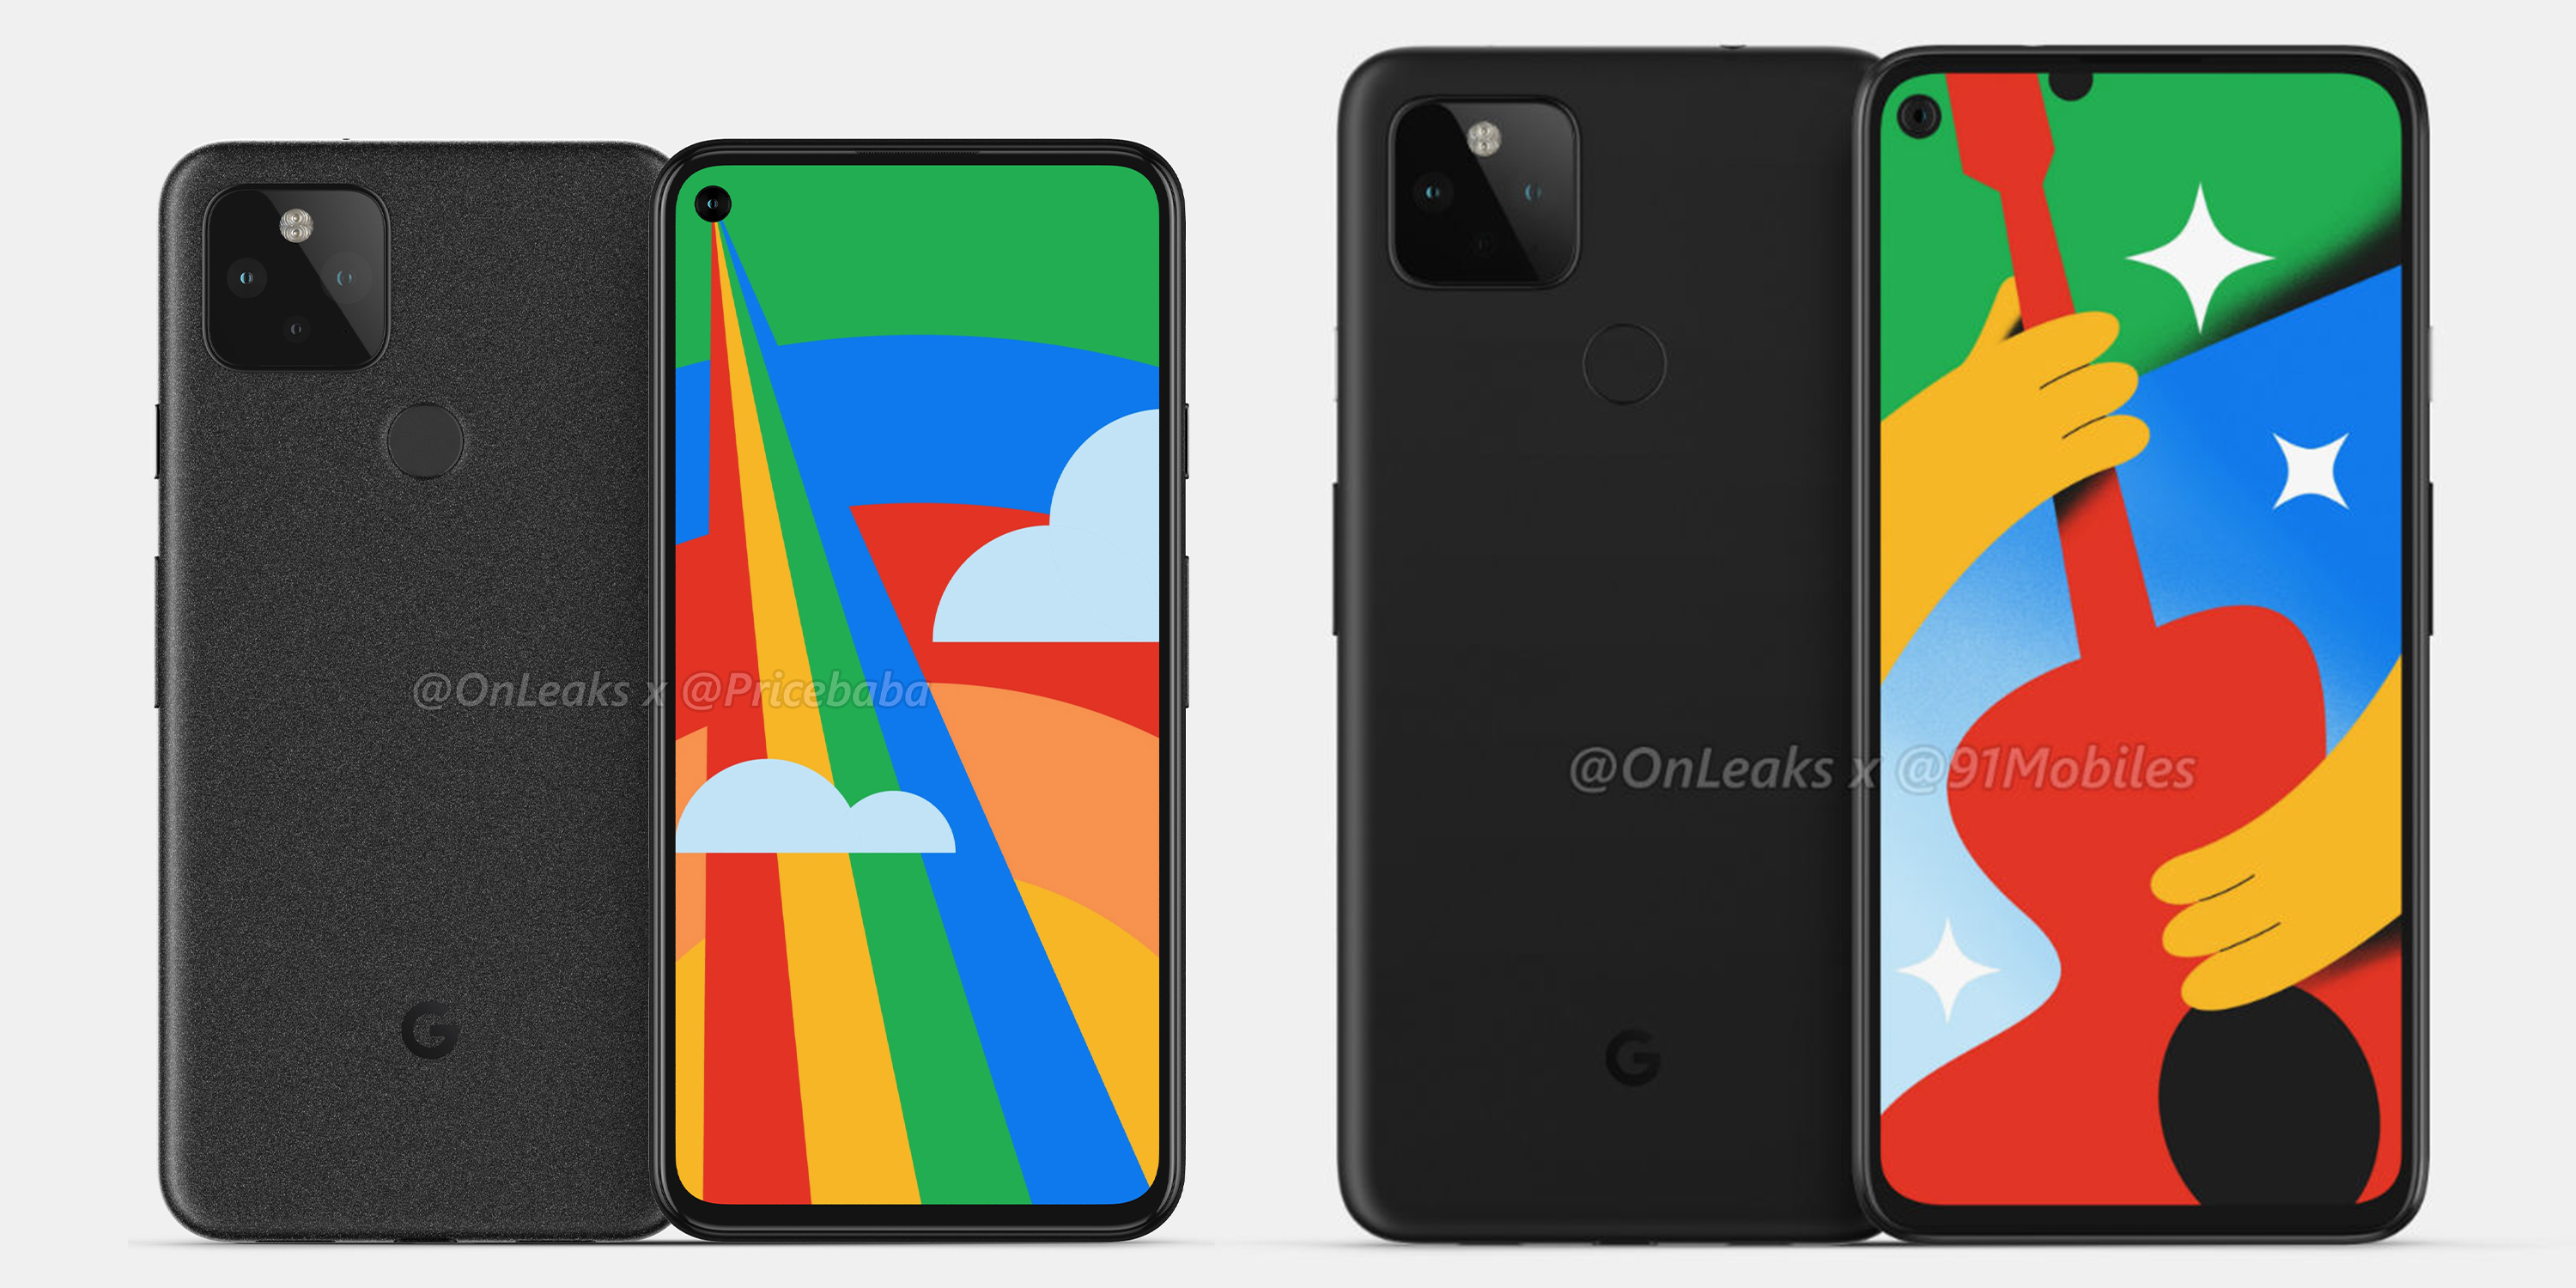 Pixel 5 and Pixel 4a 5G rumors jpg?quality=82&strip=all.'